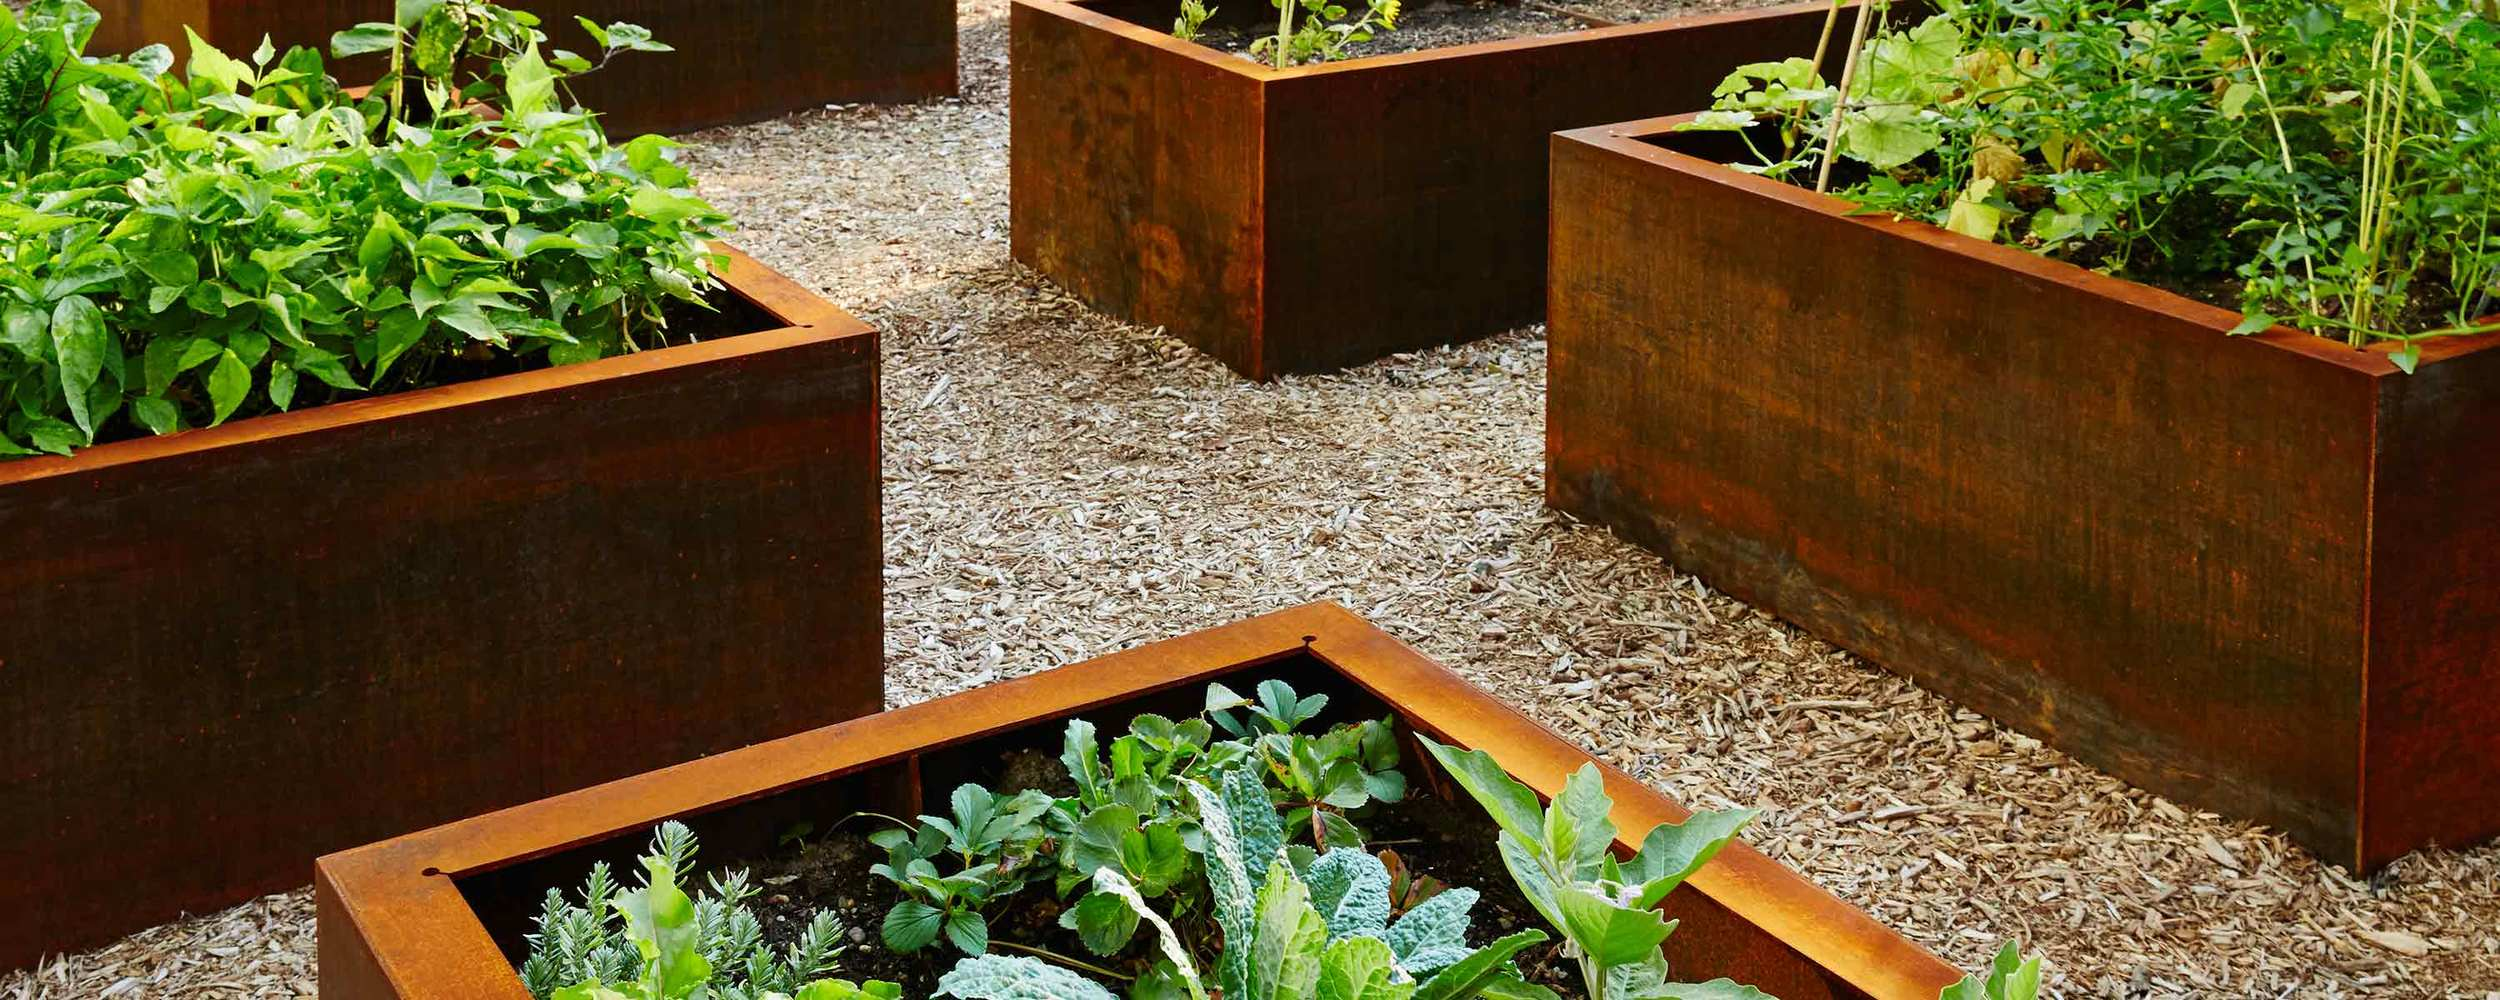 United Nations Architecture Making Studio Planting Bed System Corten Steel